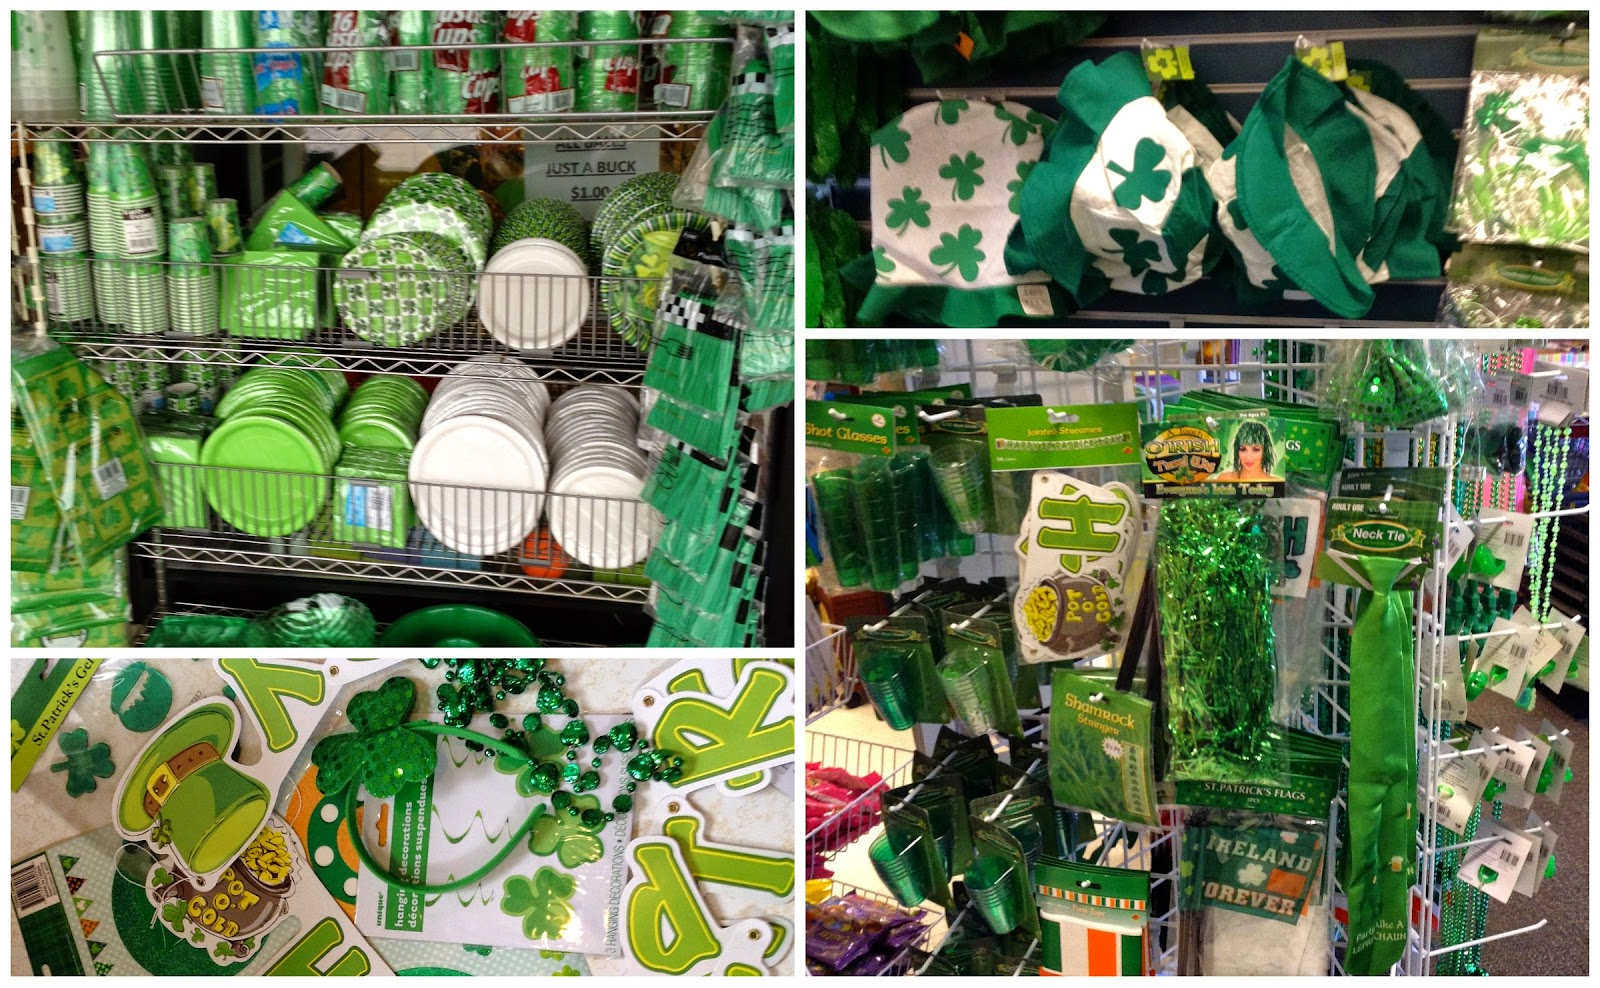 Just-A-Buck Northeast Ohio - St. Patrick's Day display